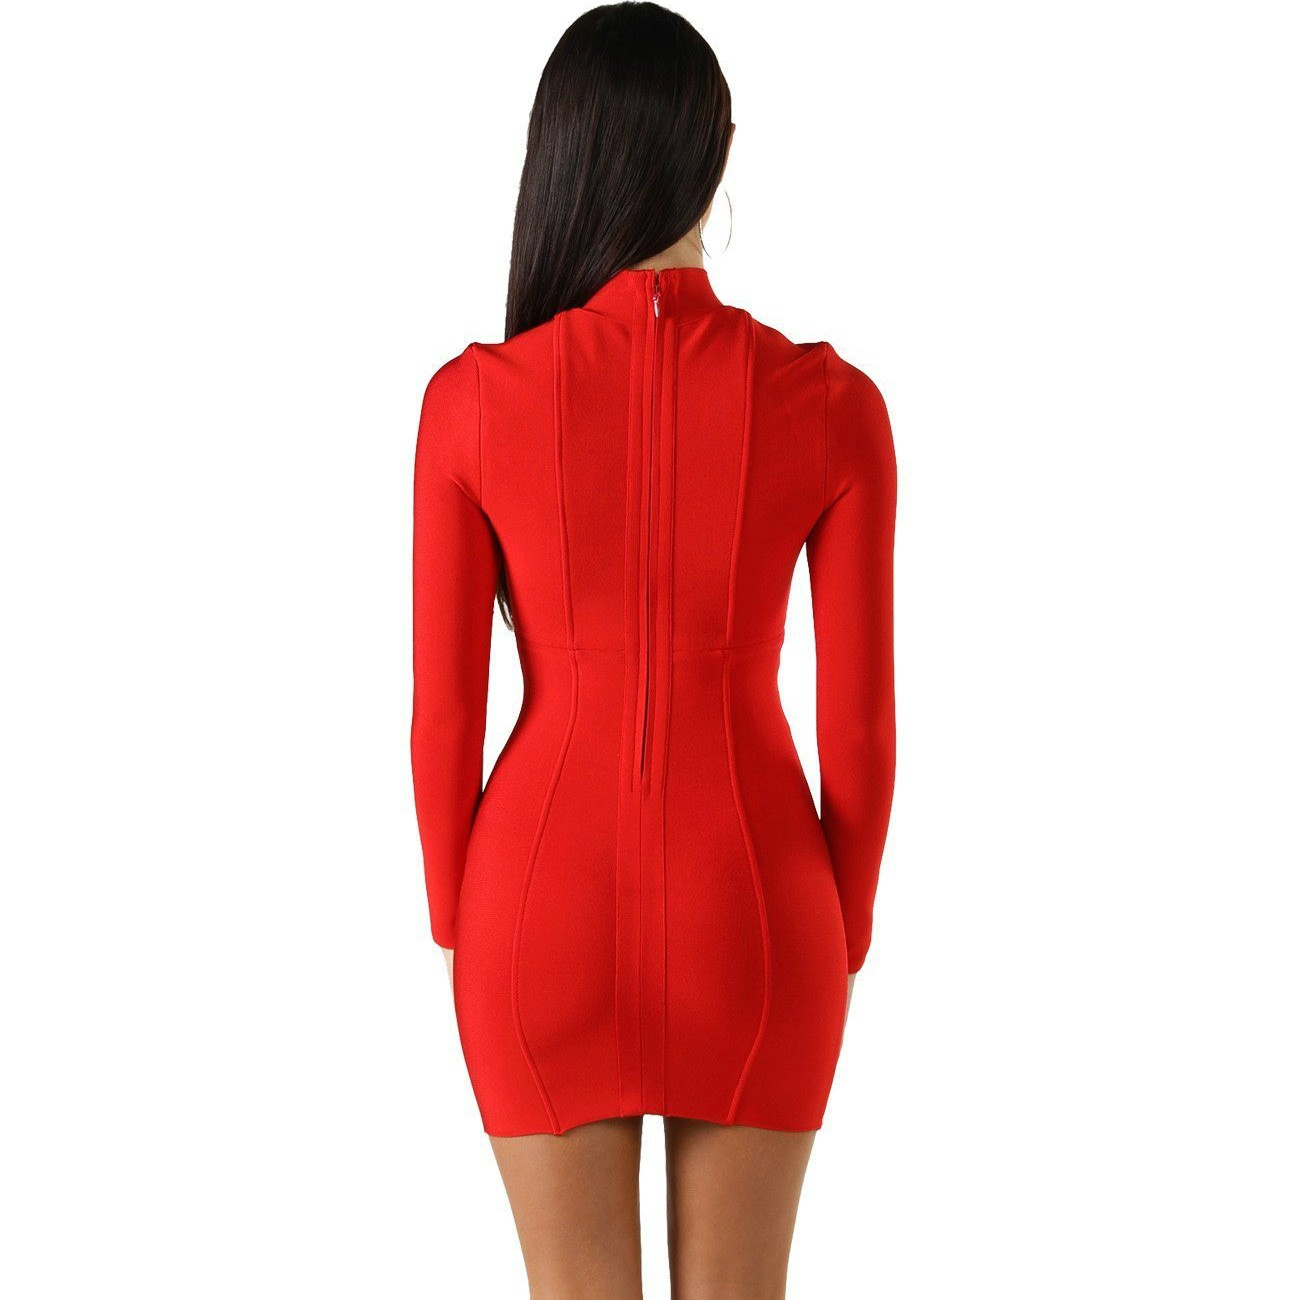 Red Halter Long Sleeve Mini Lace Up Fashion Bandage Dress HQ228-Red